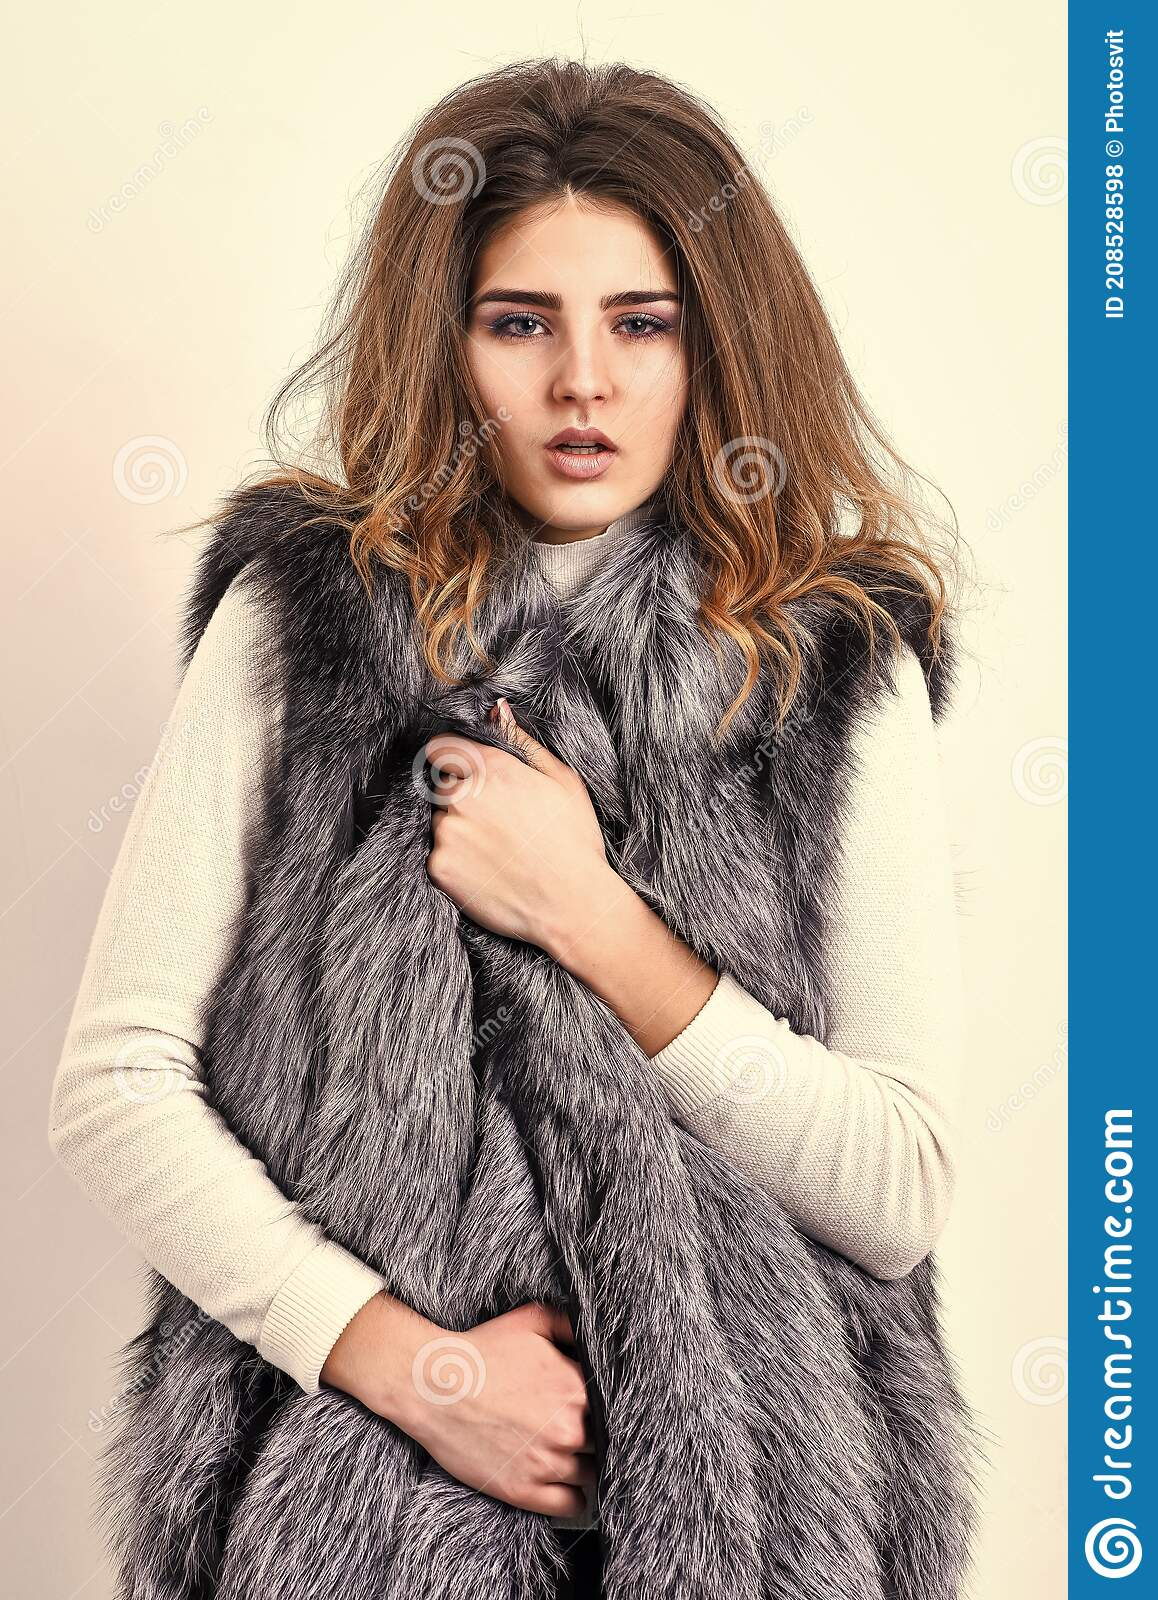 Silver Fur Vest Fashion Clothing Luxury Fur Accessory Girl Makeup Face Long Hairstyle Wear Fur Vest White Background Stock Photo Image Of Selling Luxury 208528598